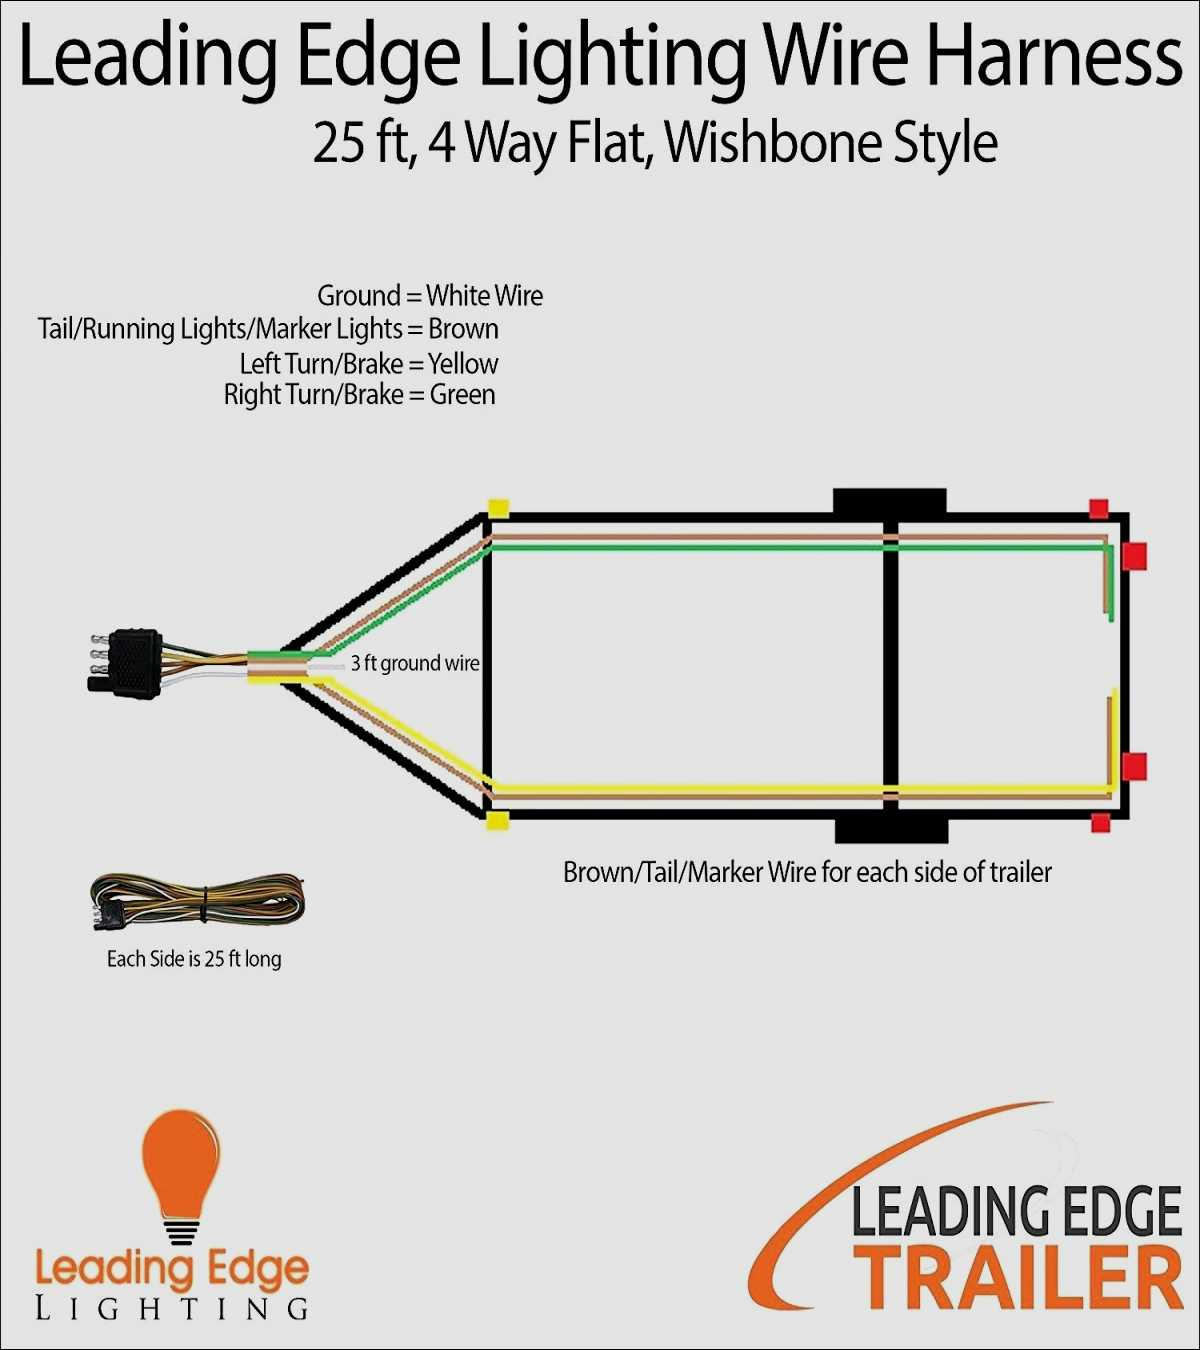 Boat Running Light Wiring Diagram - All Wiring Diagram - Basic Trailer Light Wiring Diagram